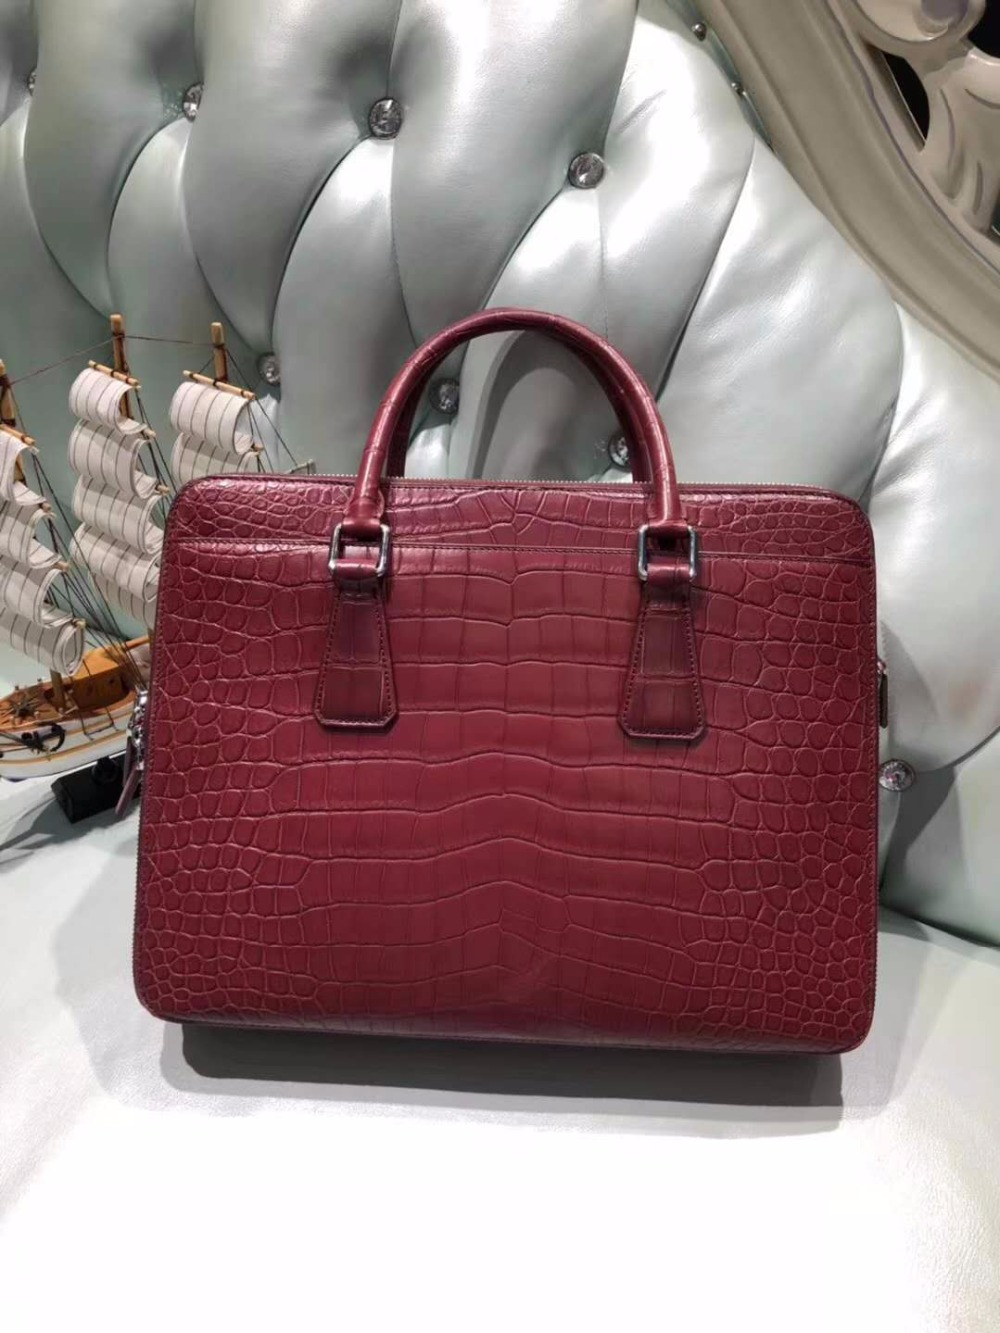 2018 fashion men s genuine real 100% crocodile skin briefcase laptop bag crocodile skin business men bag blue color 2018 newly design Men's Genuine/Real 100% Crocodile belly Skin Briefcase official Bag, Crocodile skin Business Men Bag red color